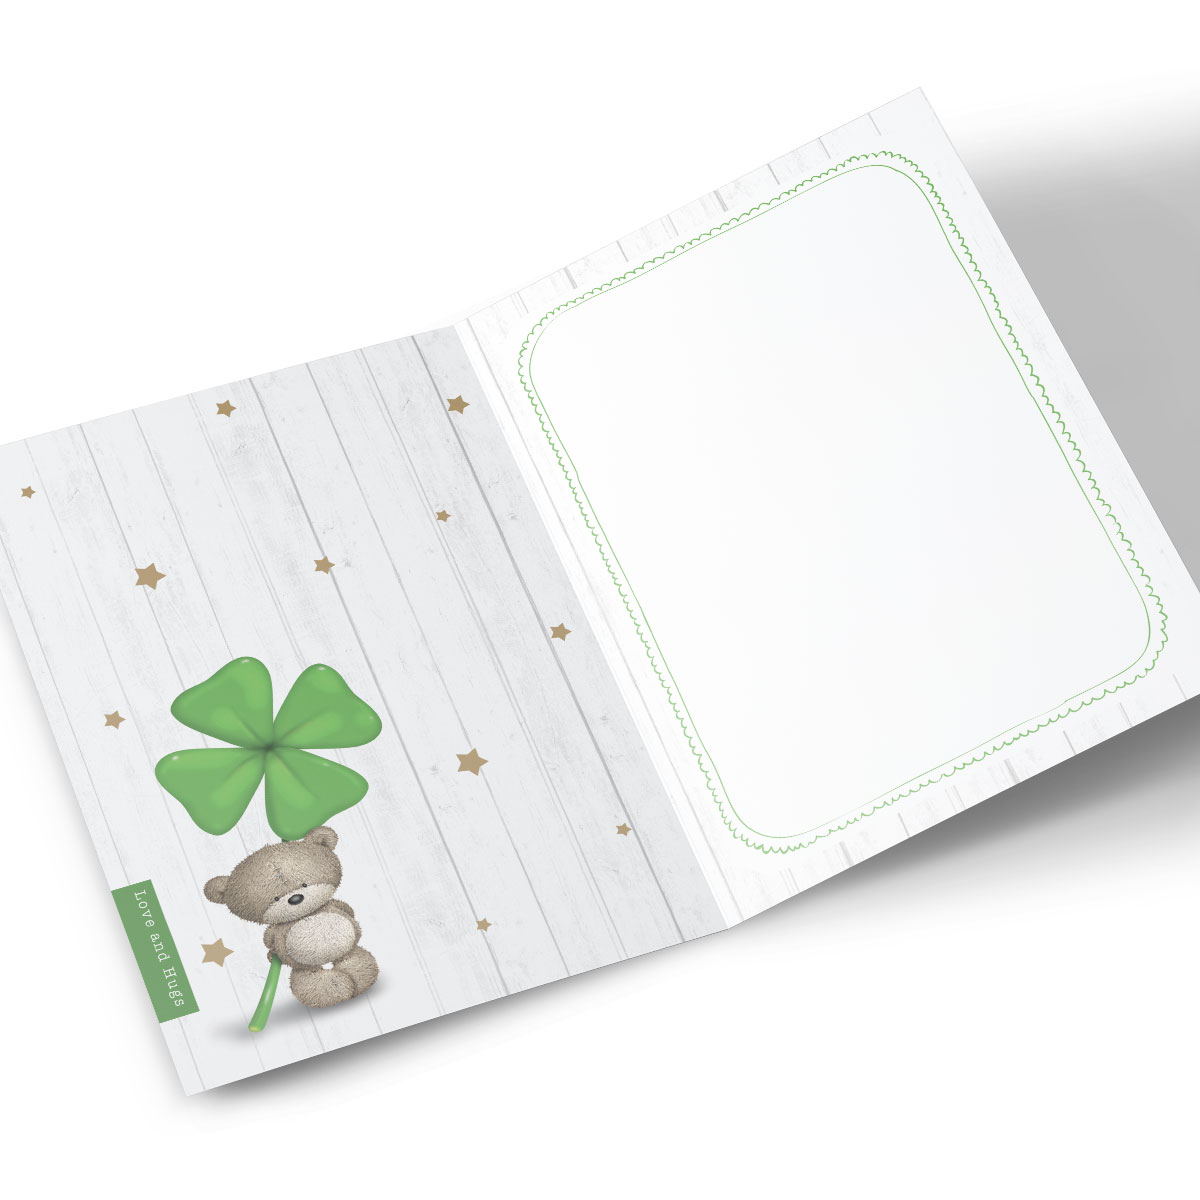 Personalised Hugs Bear Good Luck Card - Four-Leaf Clover